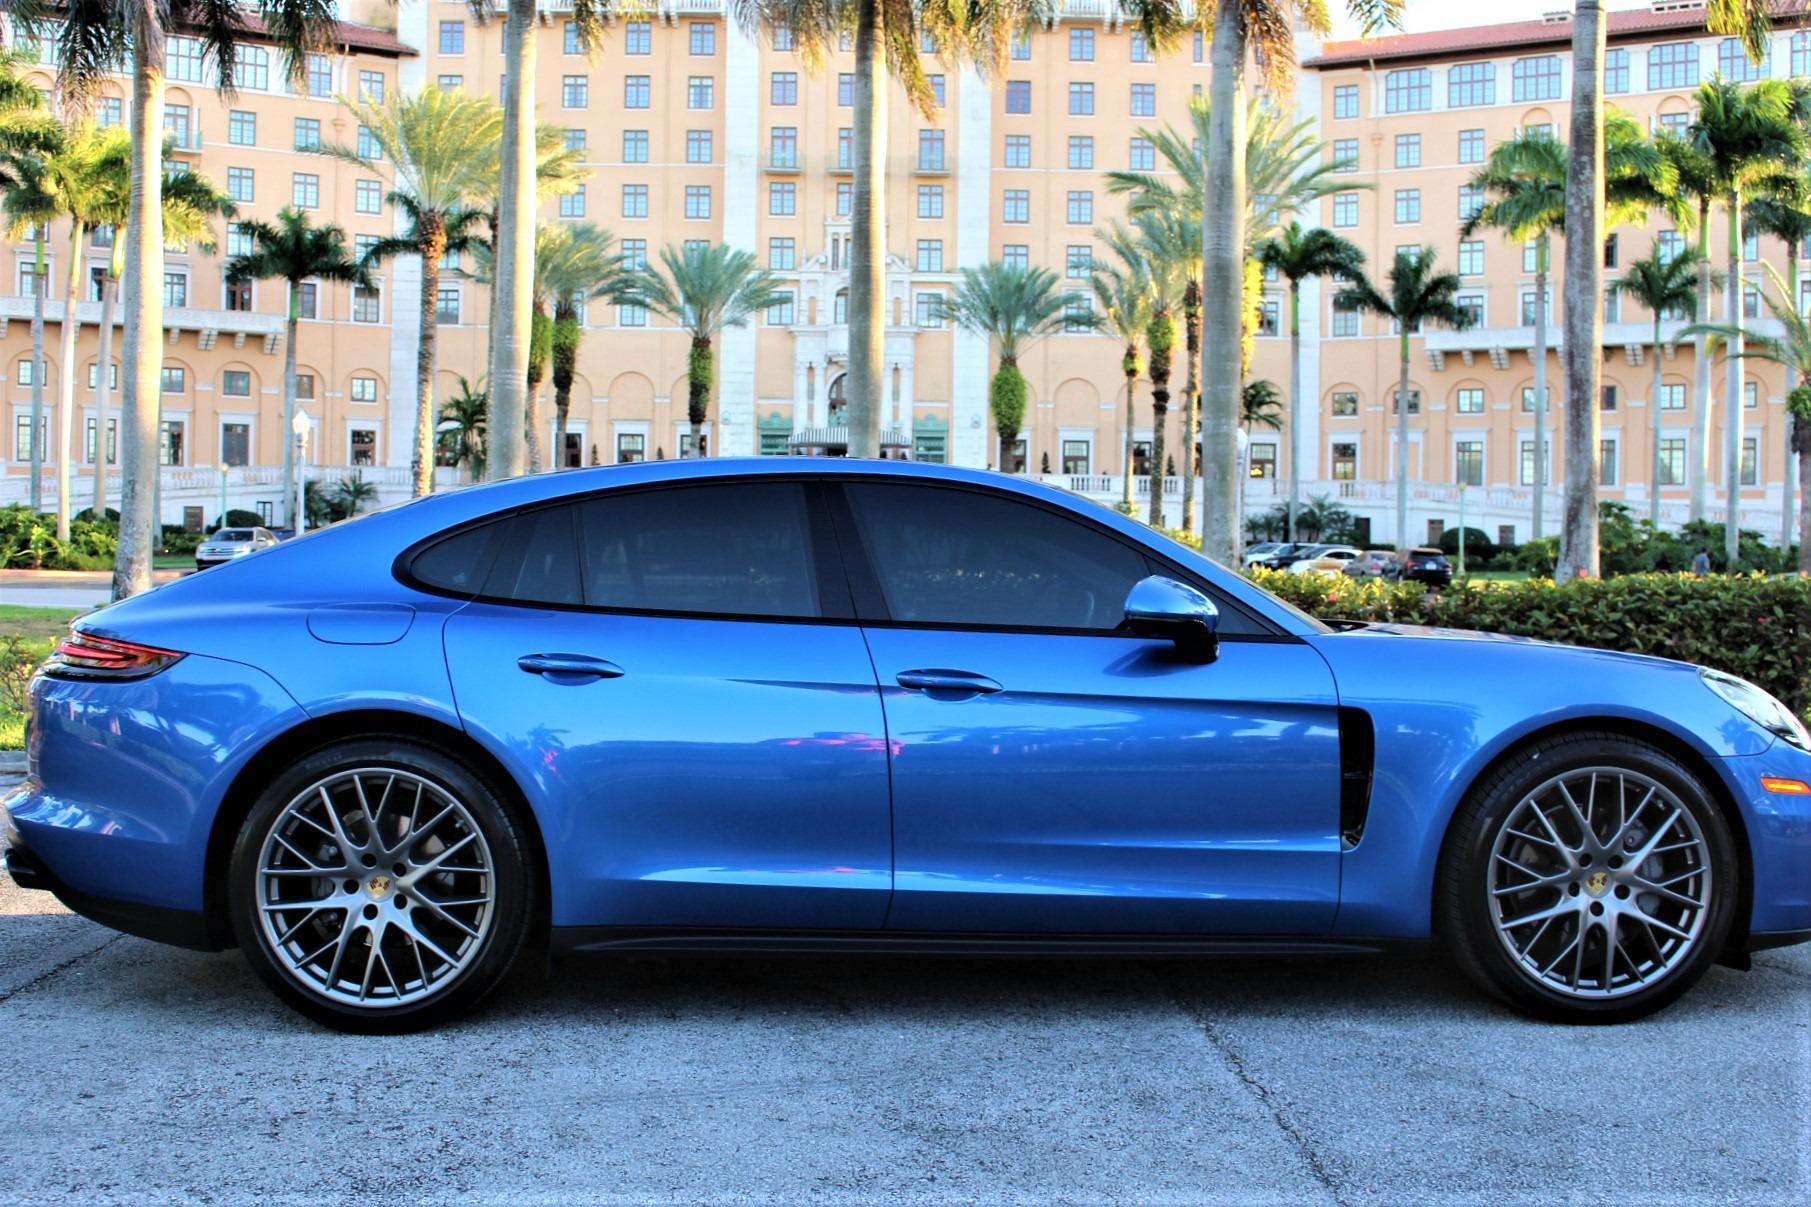 Used 2018 Porsche Panamera 4S for sale $83,850 at The Gables Sports Cars in Miami FL 33146 2